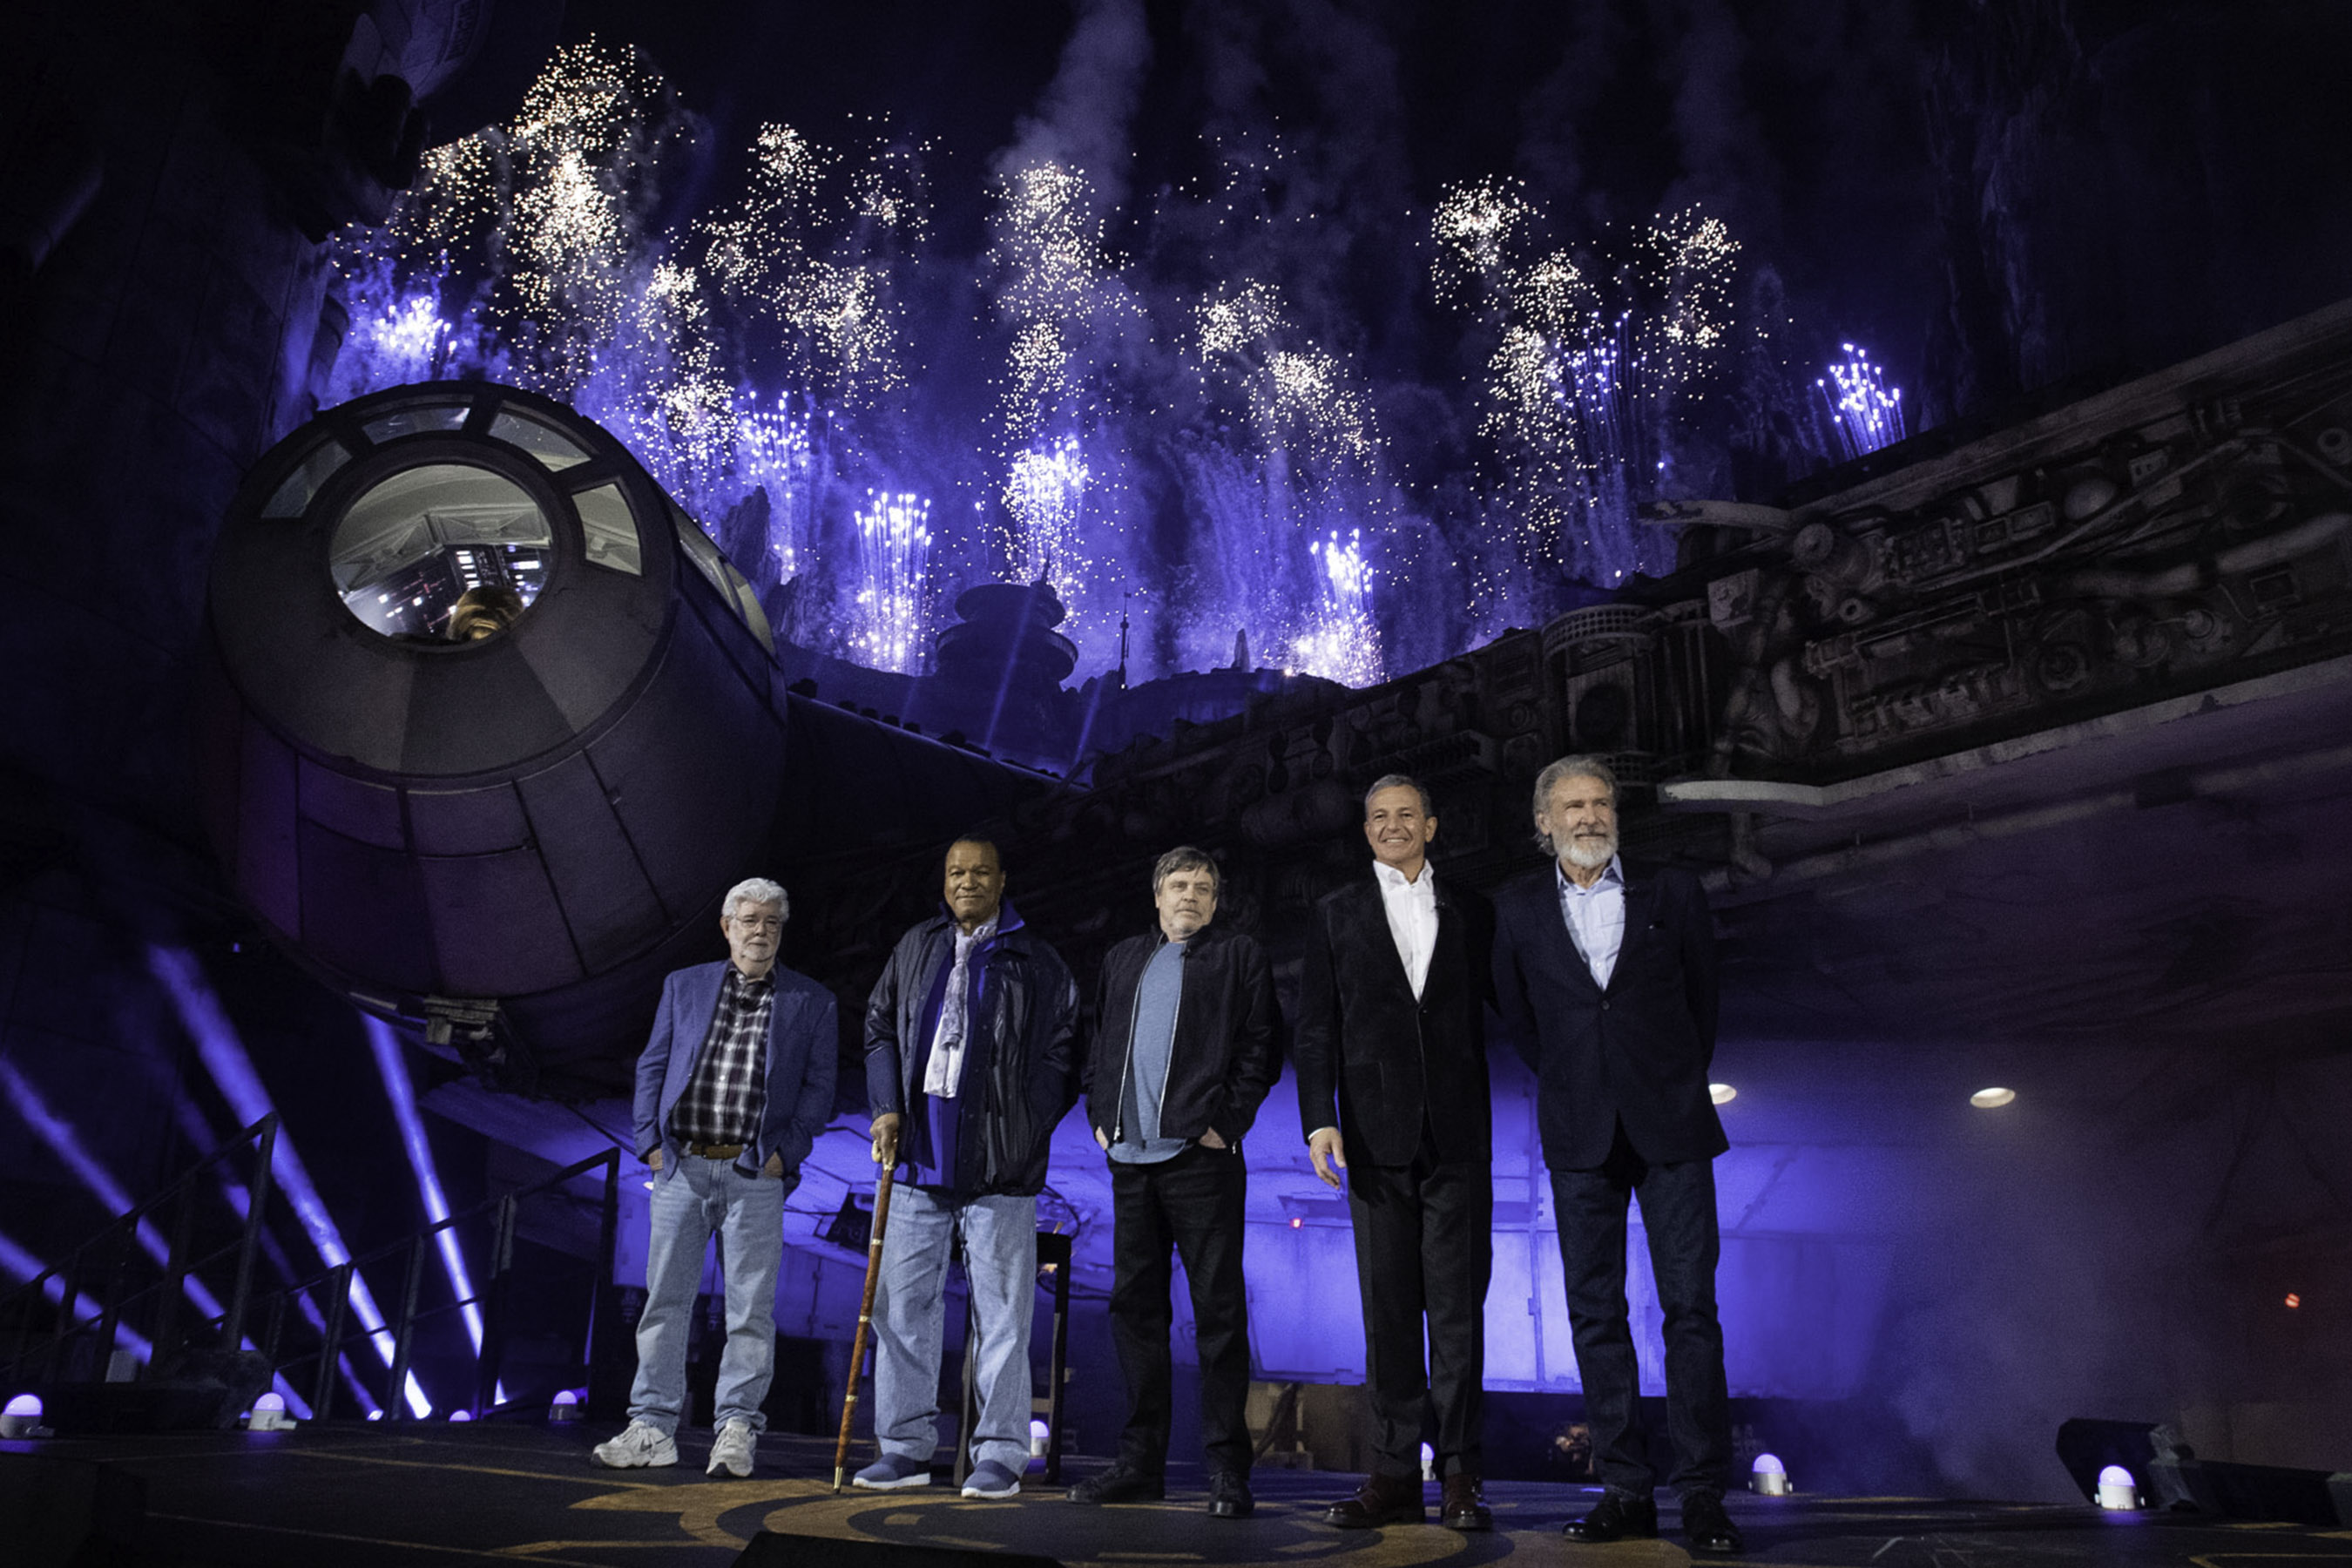 Star Wars creator George Lucas and actors Billy Dee Williams and Mark Hamill, Walt Disney Company Chairman and CEO Bob Iger and actor Harrison Ford celebrate the opening of Star Wars Galaxy's Edge